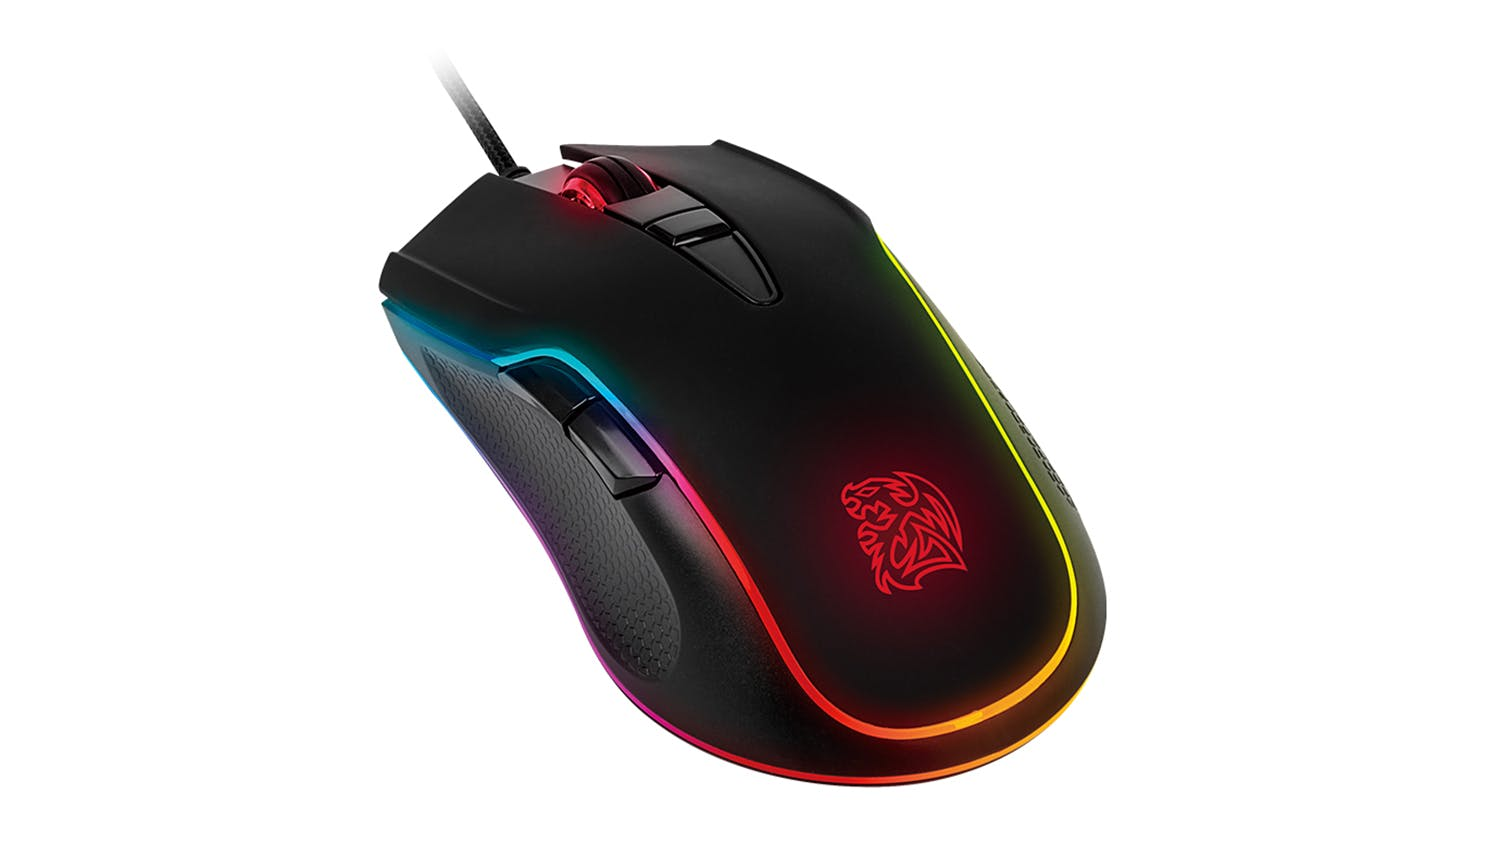 Tt eSPORTS Neros RGB Optical Gaming Mouse